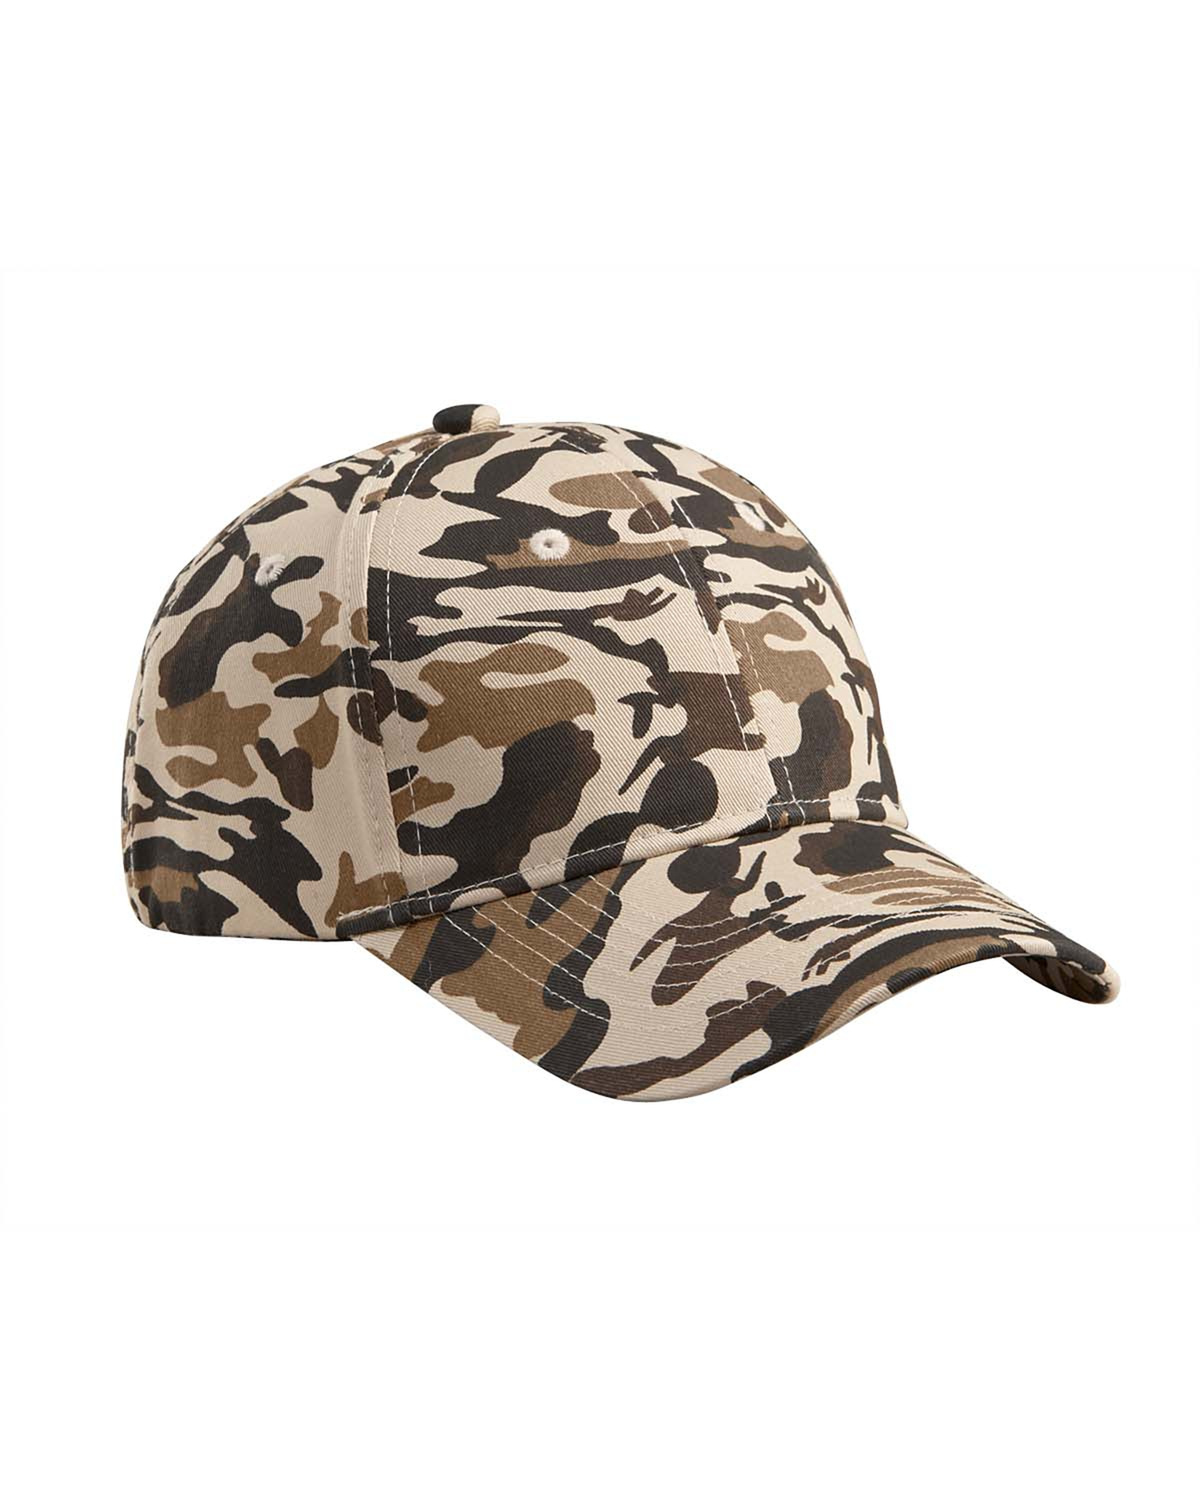 Cotton Structured Camo Hat